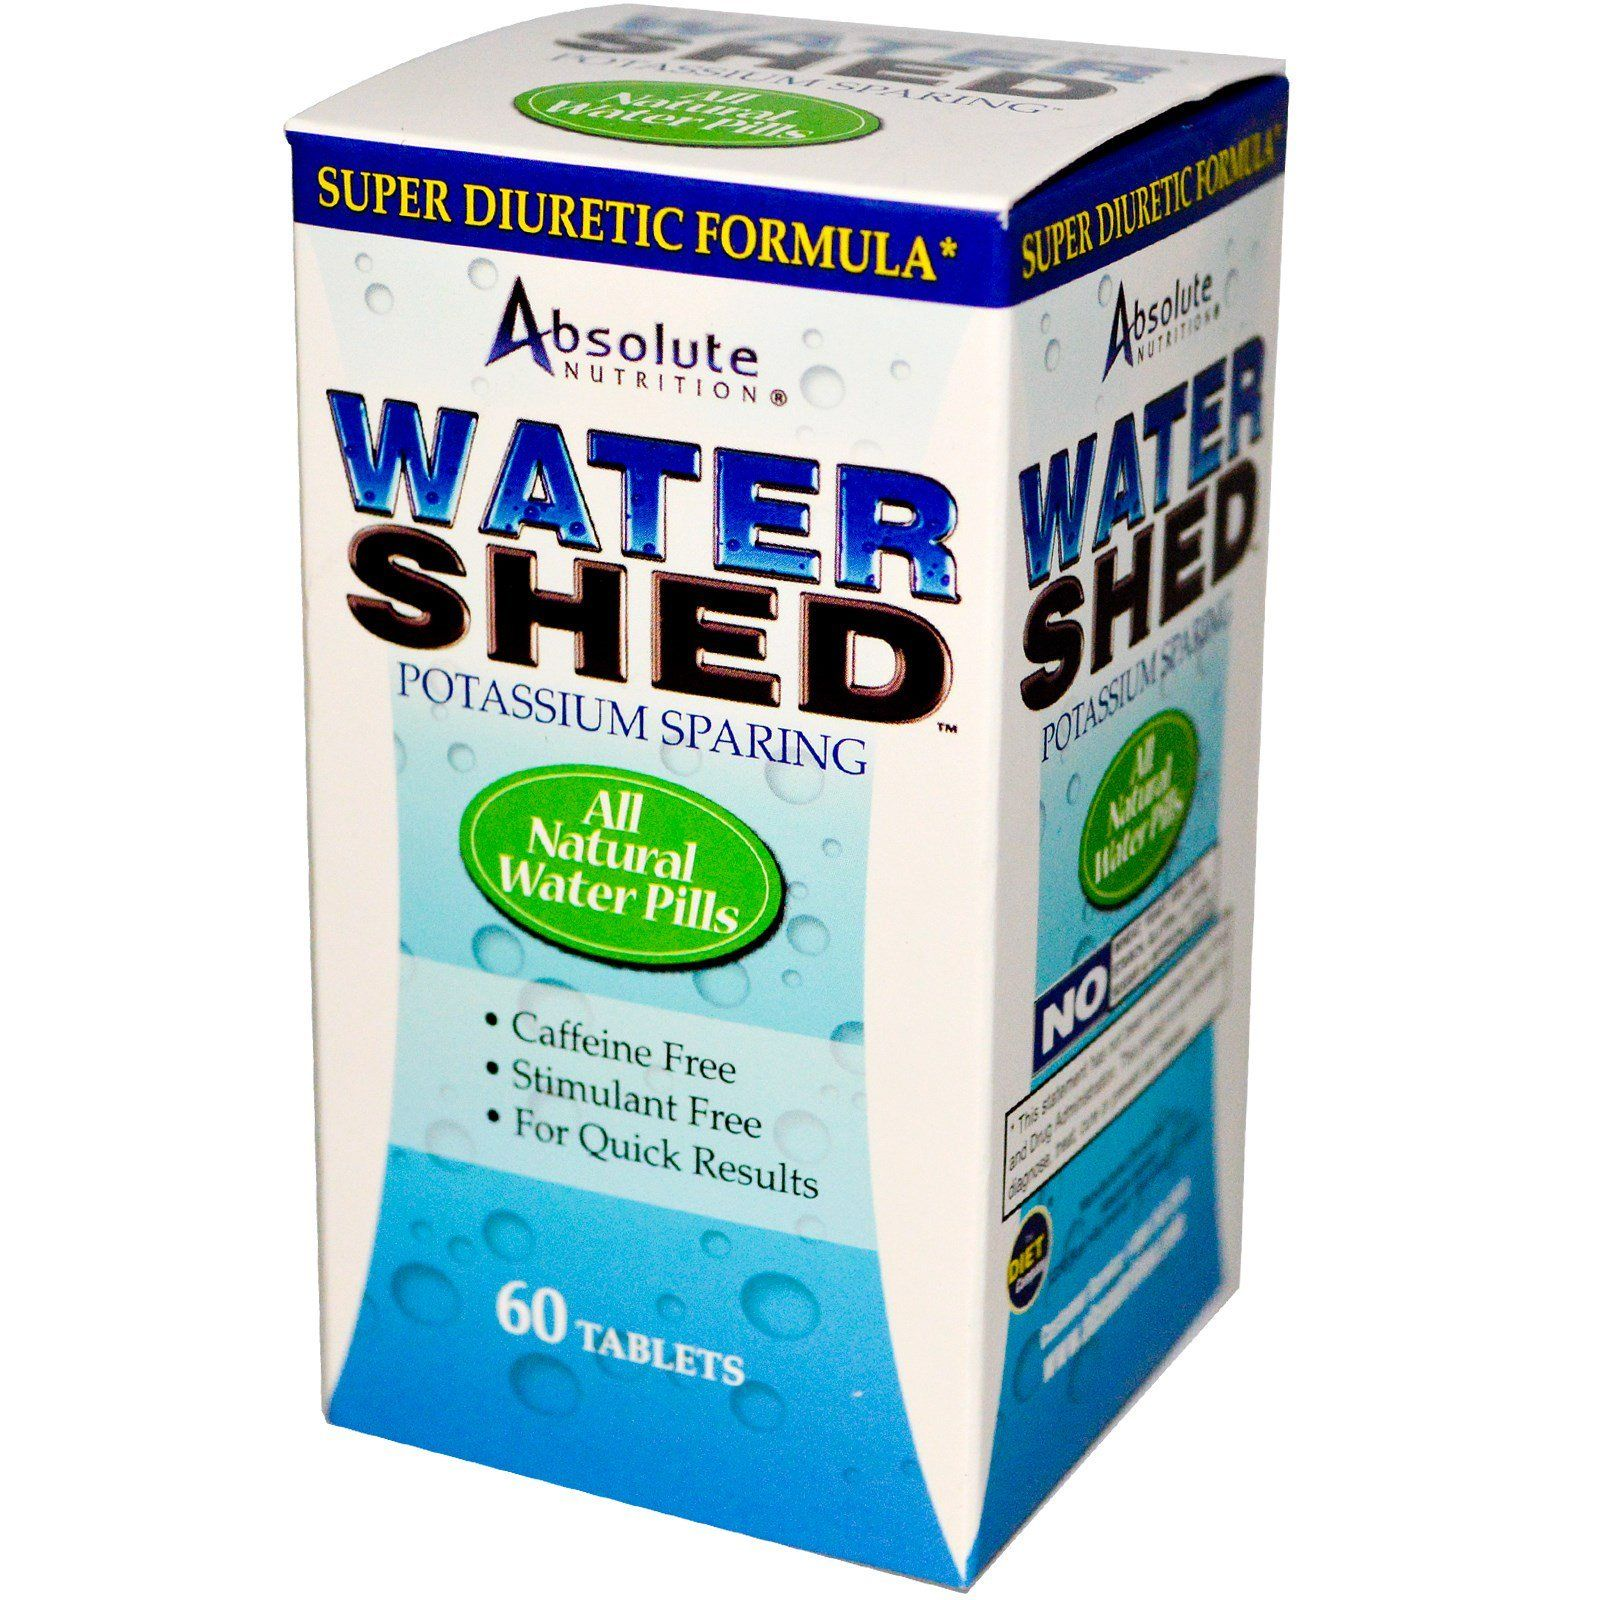 Absolute Nutrition Watershed 60 Tablets Nutrition